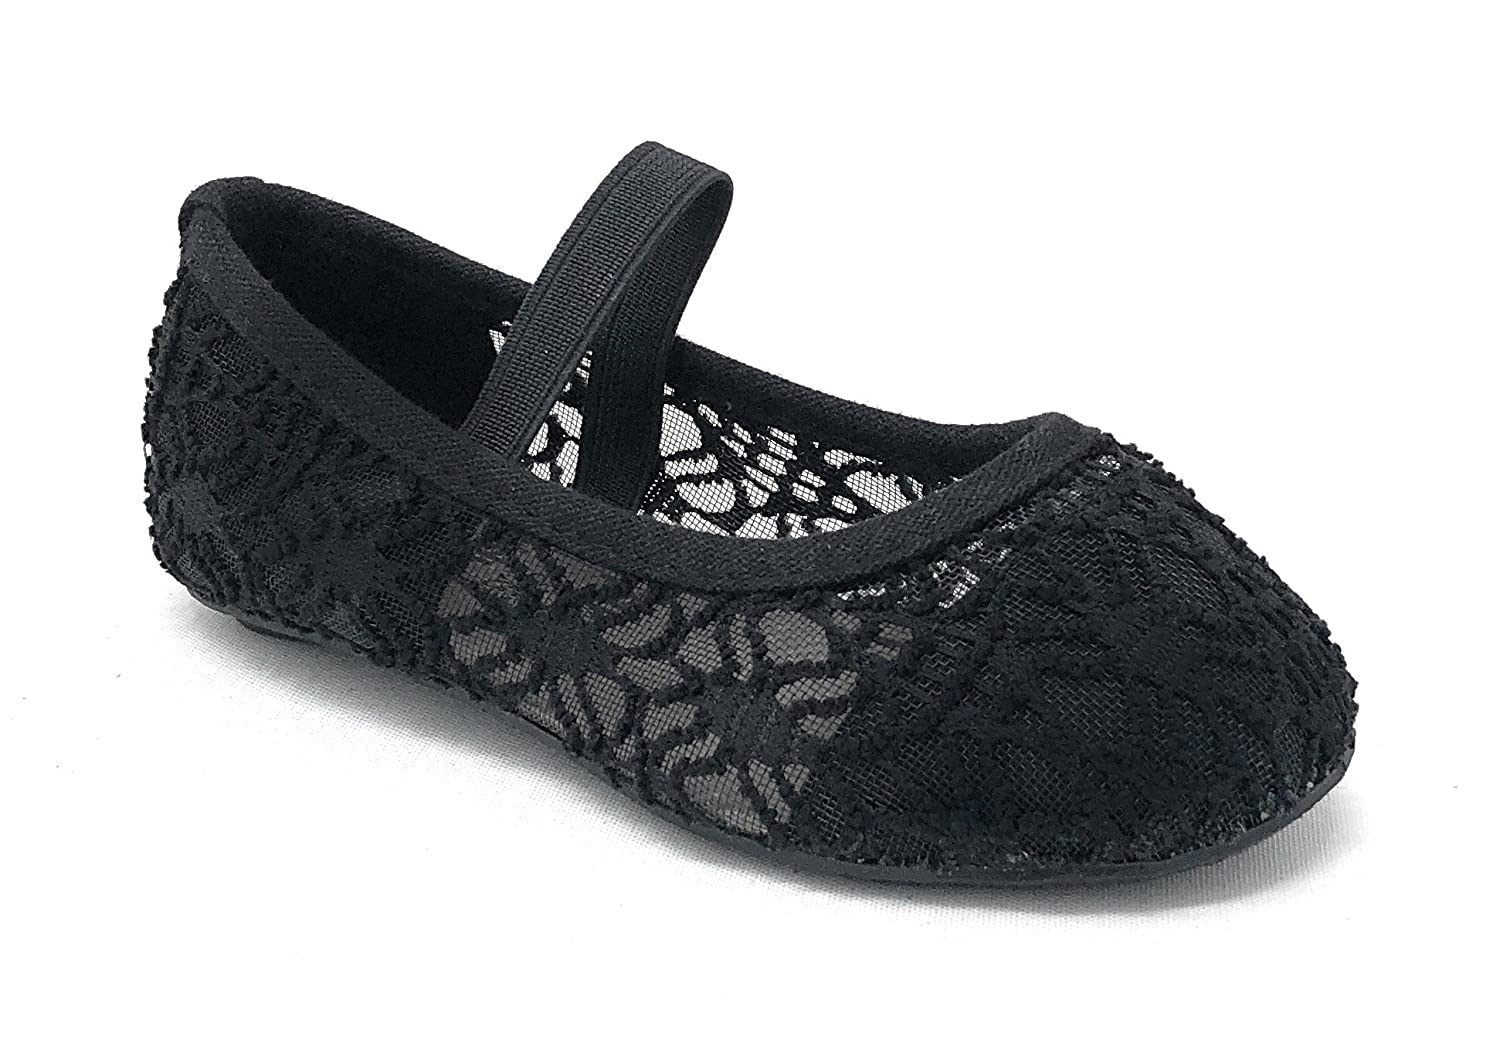 Simply Petals Little Girl's Toddlers Breathable Crochet Cute Lace Ballet Flat in Black Size: 7